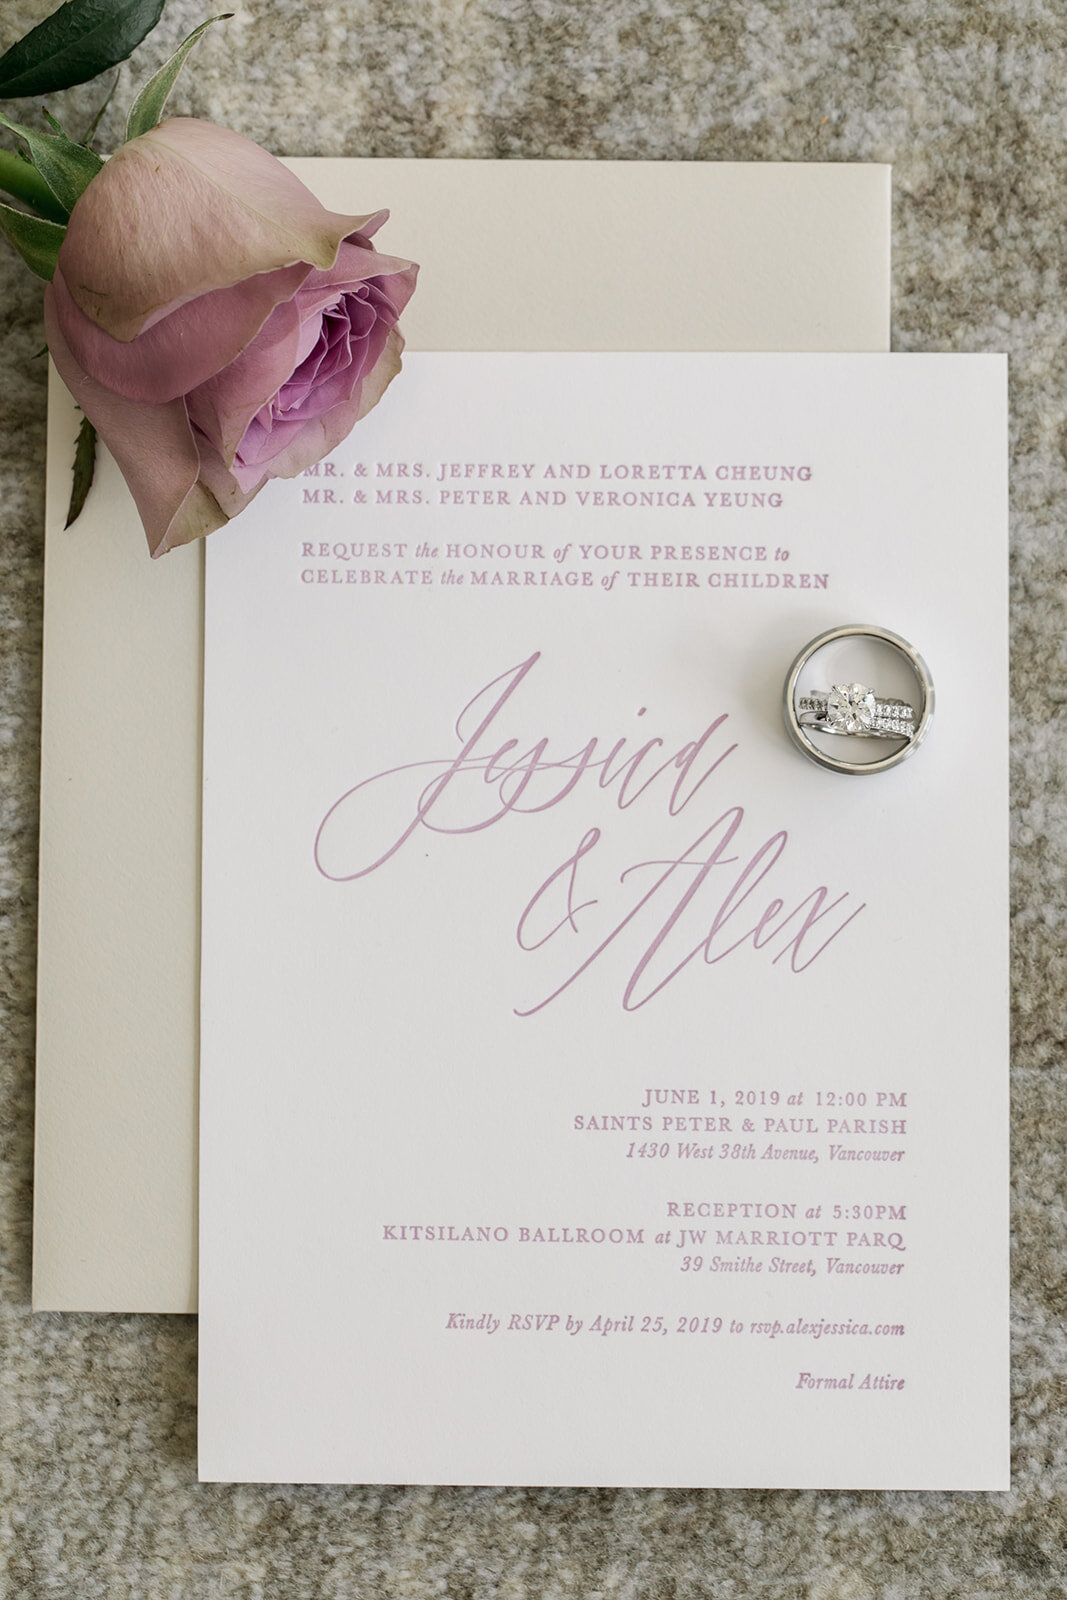 Jessica & Alex JW Marriott Parq Wedding. Wedding letterpress and custom calligraphy Invitation suite with the Bride's engagement rings Keepsake Events